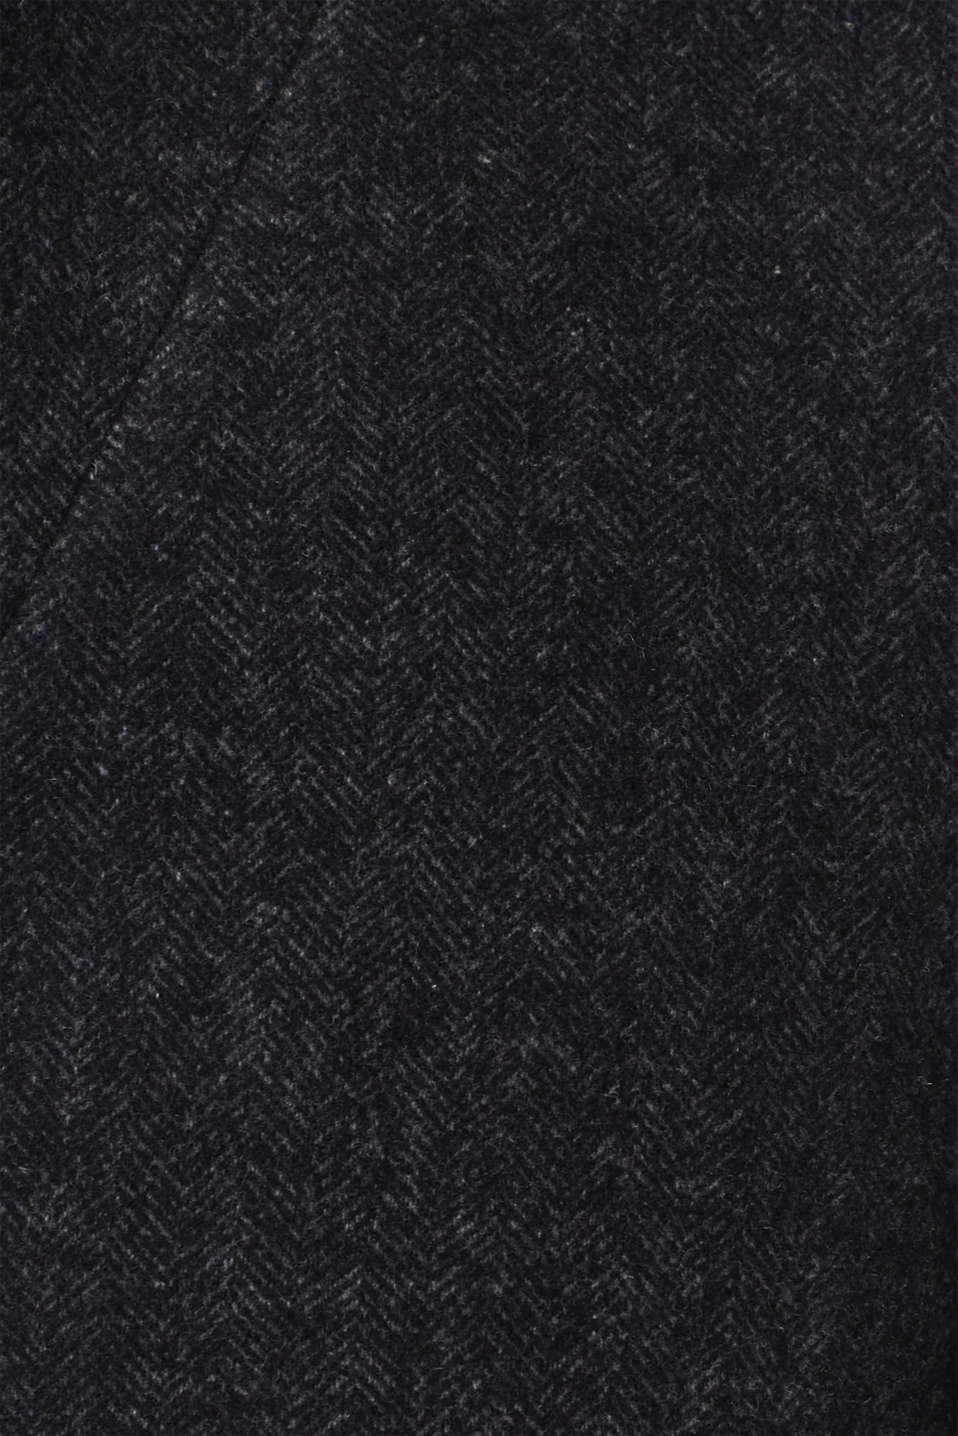 Wool blend: Coat with a herringbone pattern, ANTHRACITE, detail image number 4